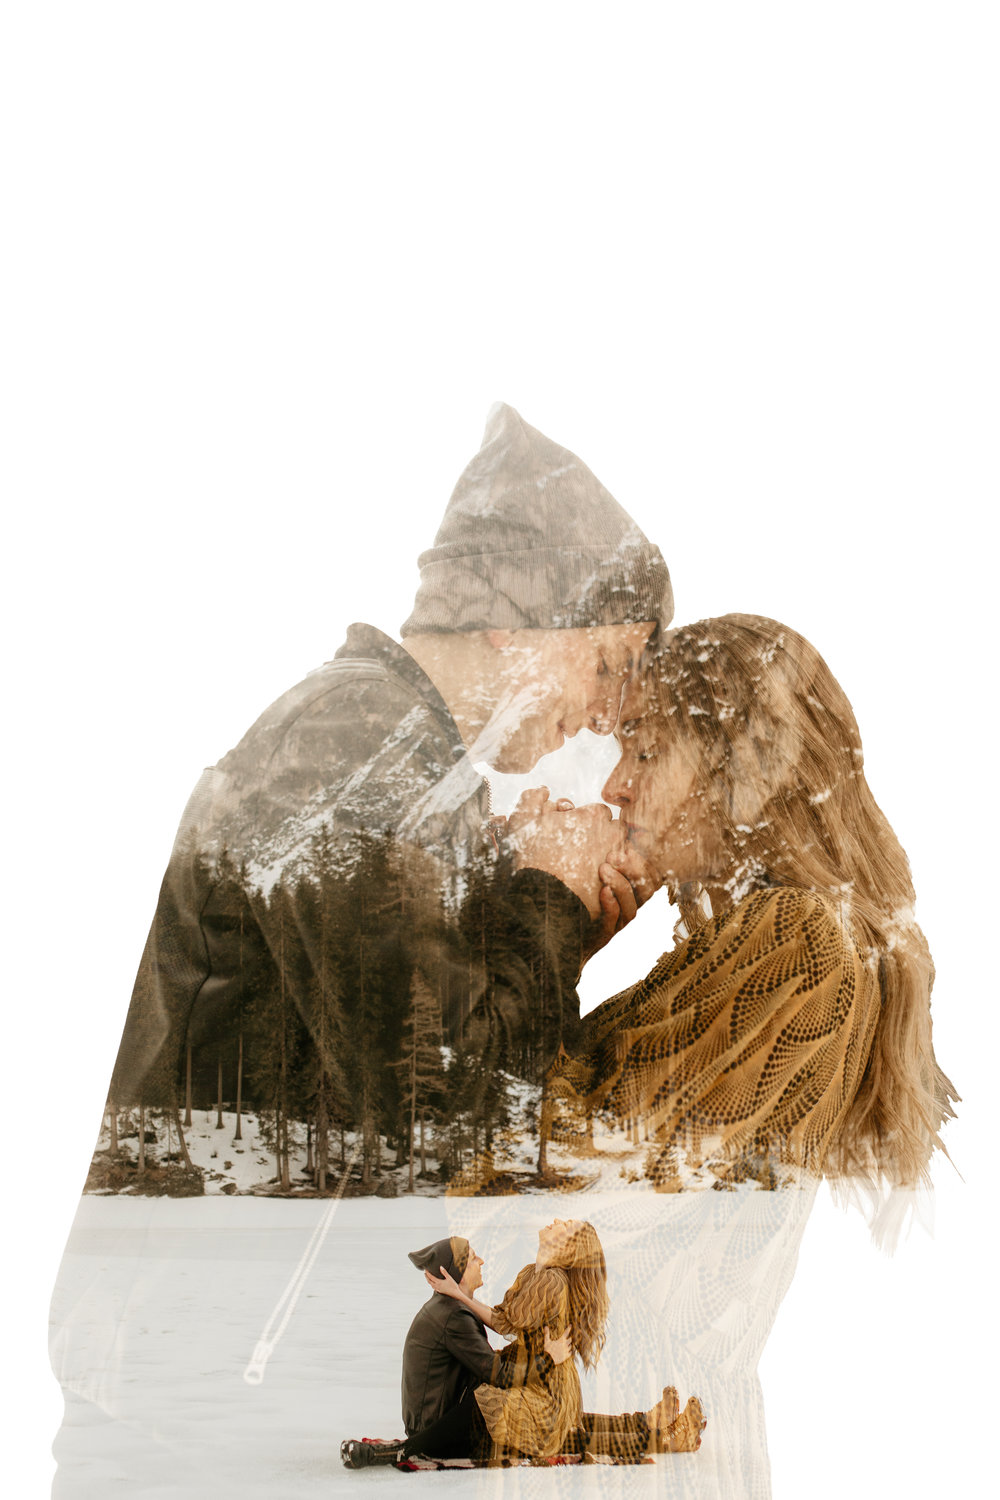 How to make a double exposure - how to edit a double exposure - how to edit a double exposure photo in photoshop - how to make a double exposure in Lightroom - how to create a double exposure - how to double exposure photoshop - triple exposure tutorial - double exposure tutorial - tacoma elopement photography